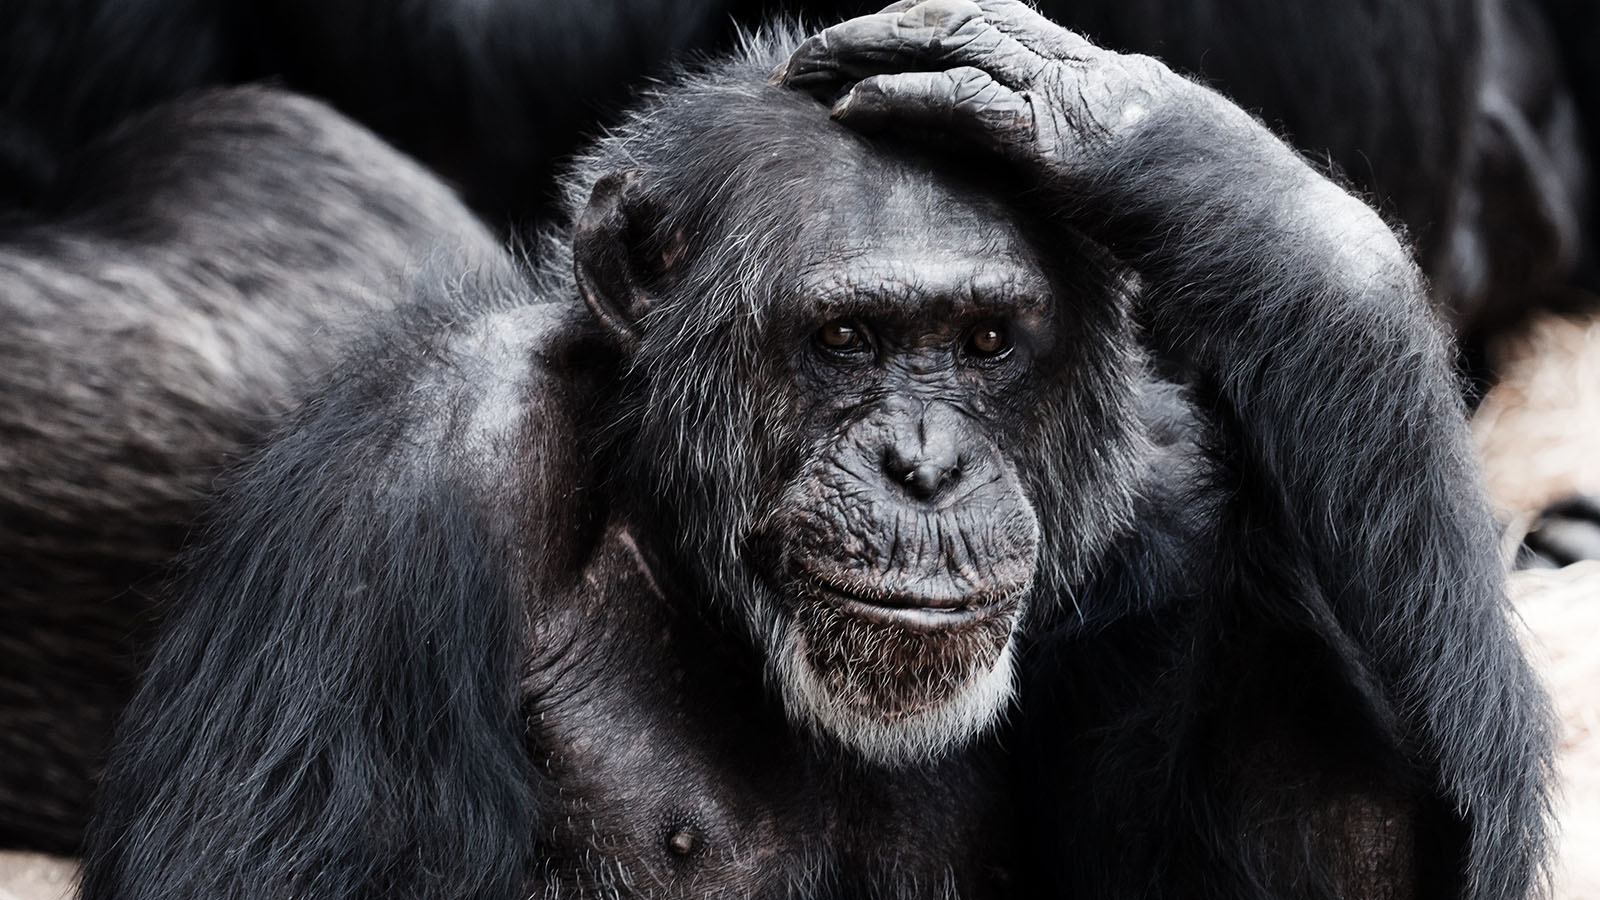 An ape looking perplexed with one hand placed on its head.